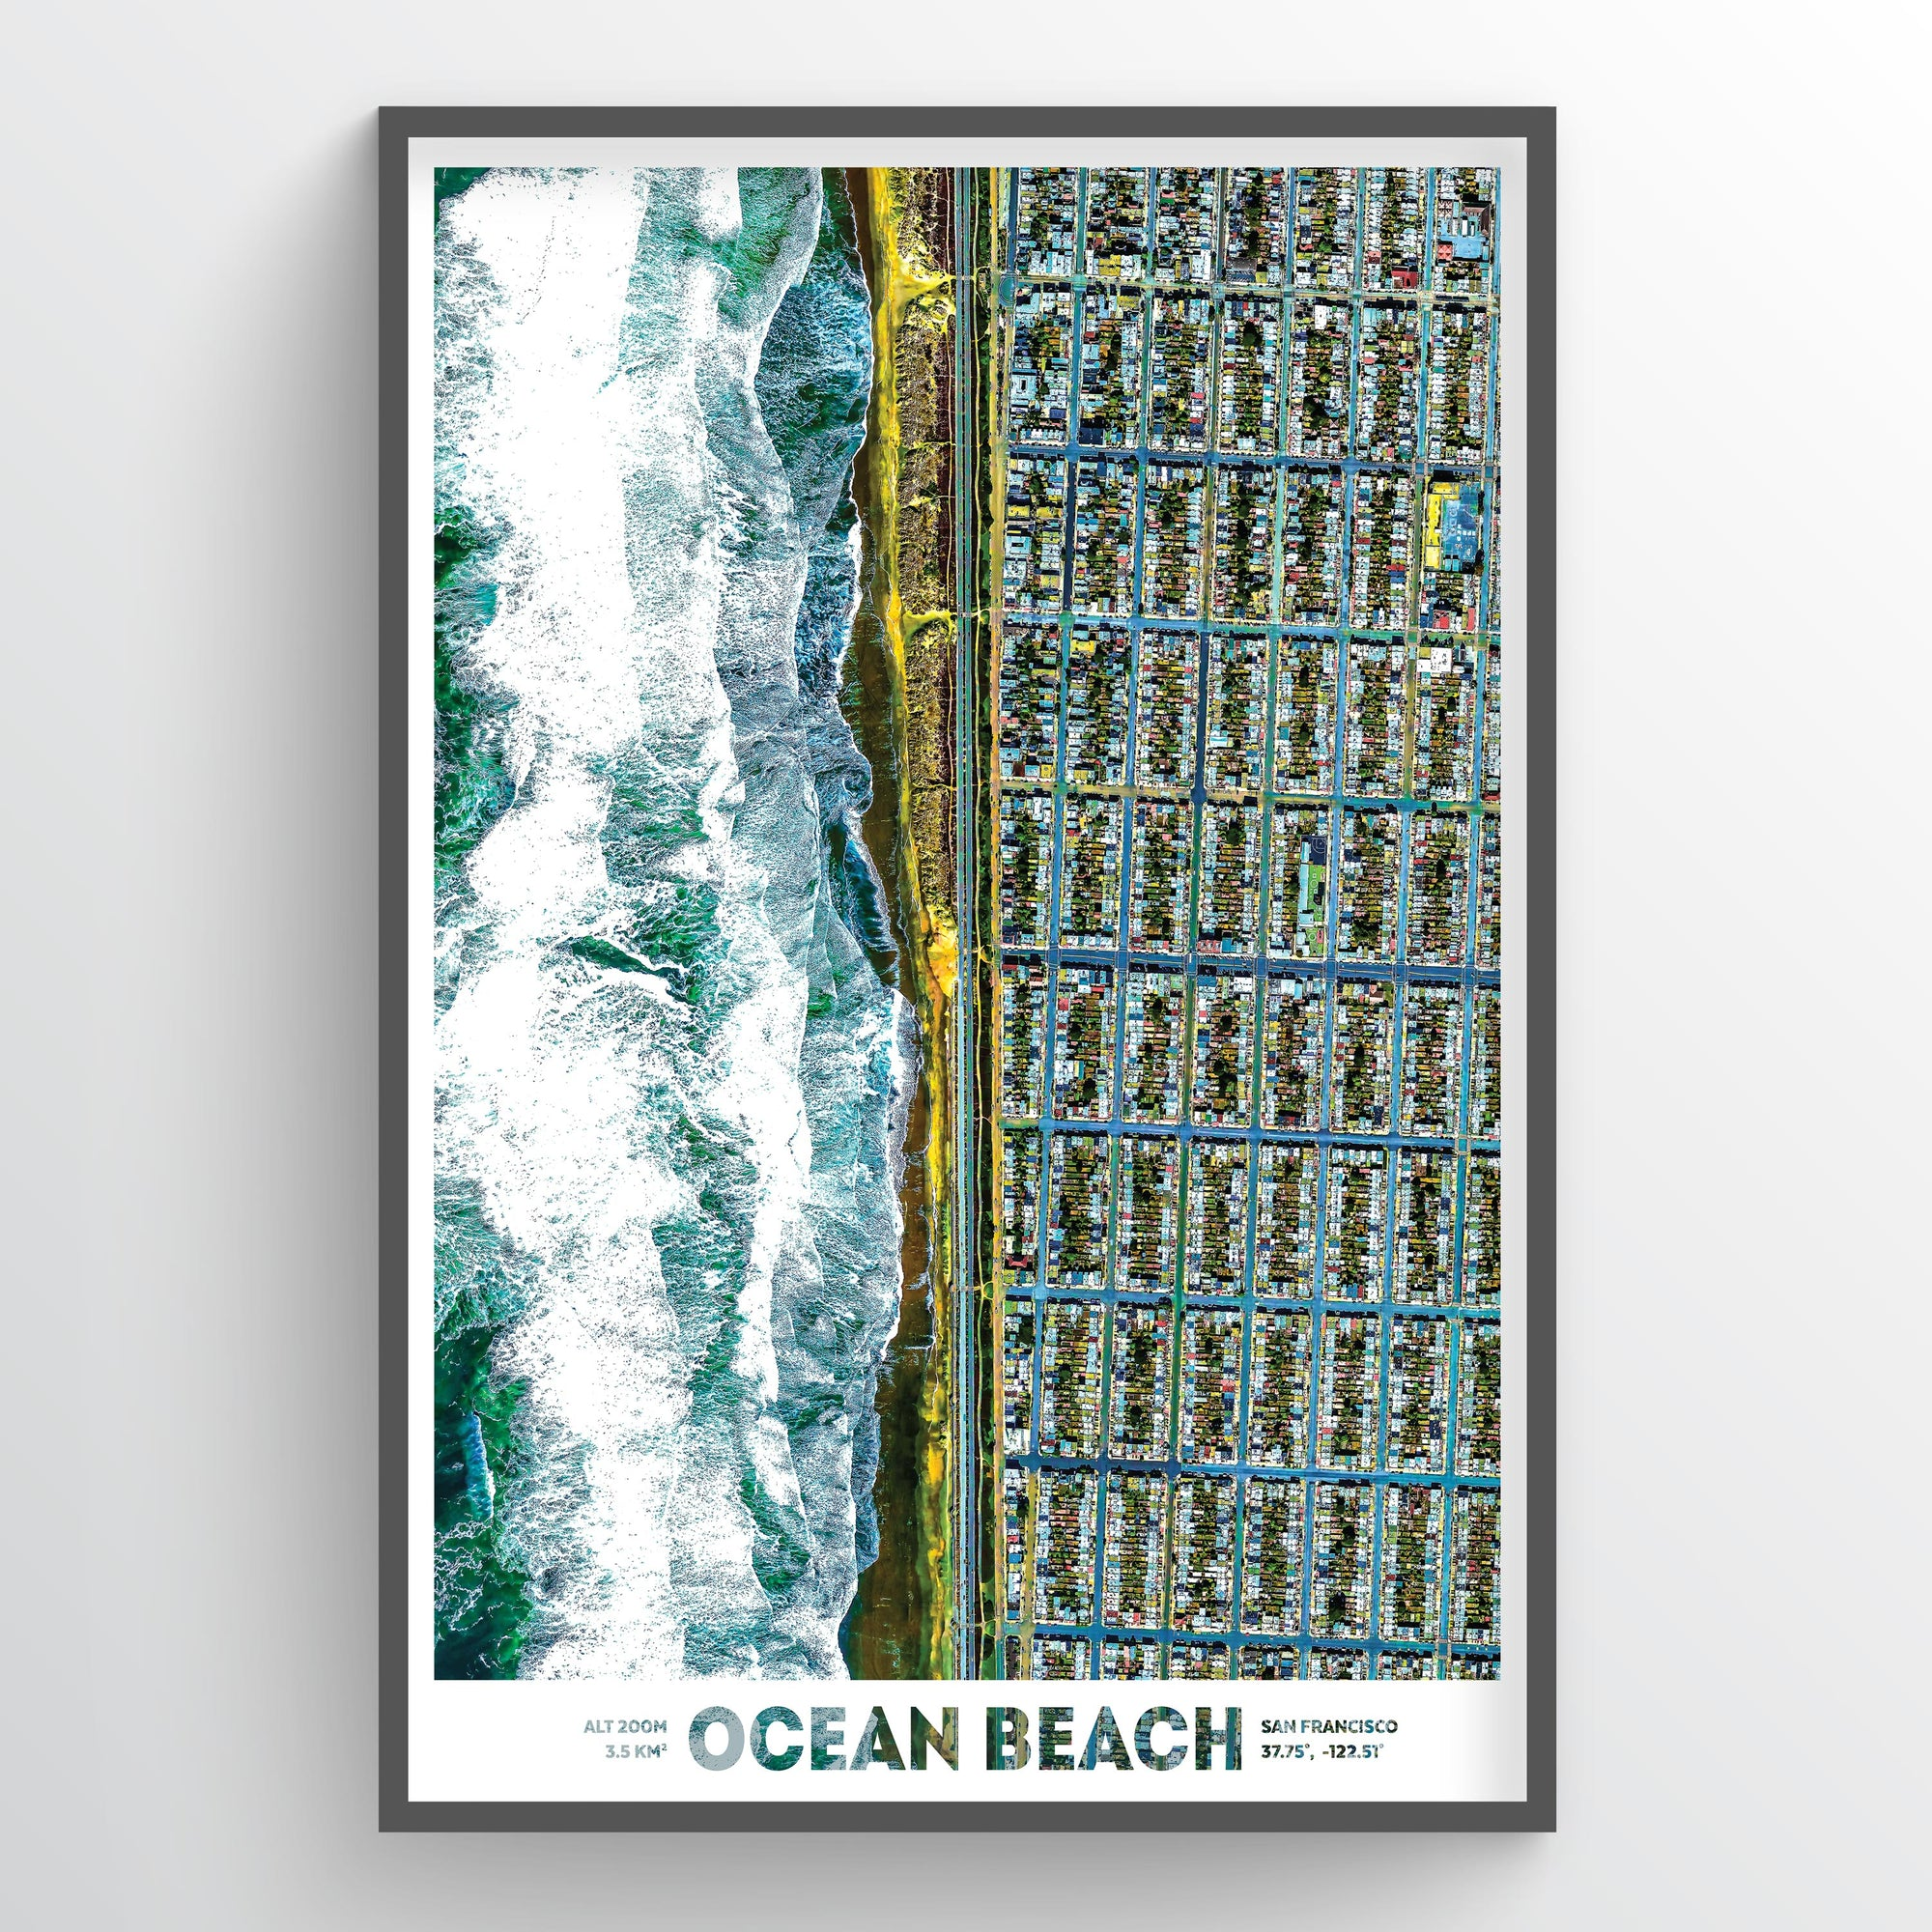 Ocean Beach San Francisco - Fine Art